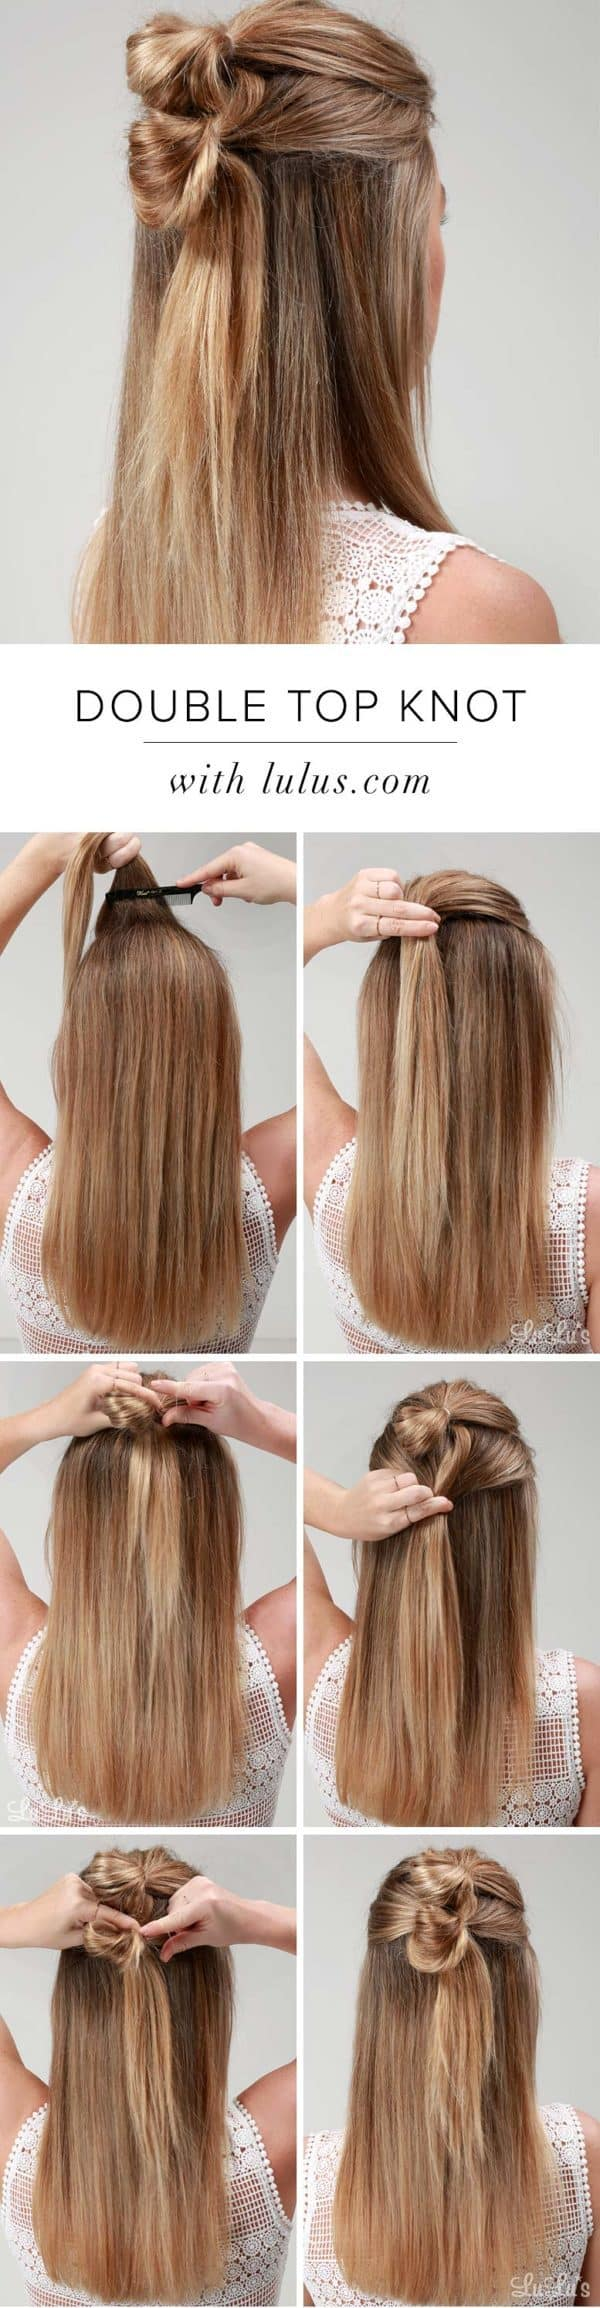 Awesome Hairstyle Tutorials That You Can Do In Less Than 5 Minutes